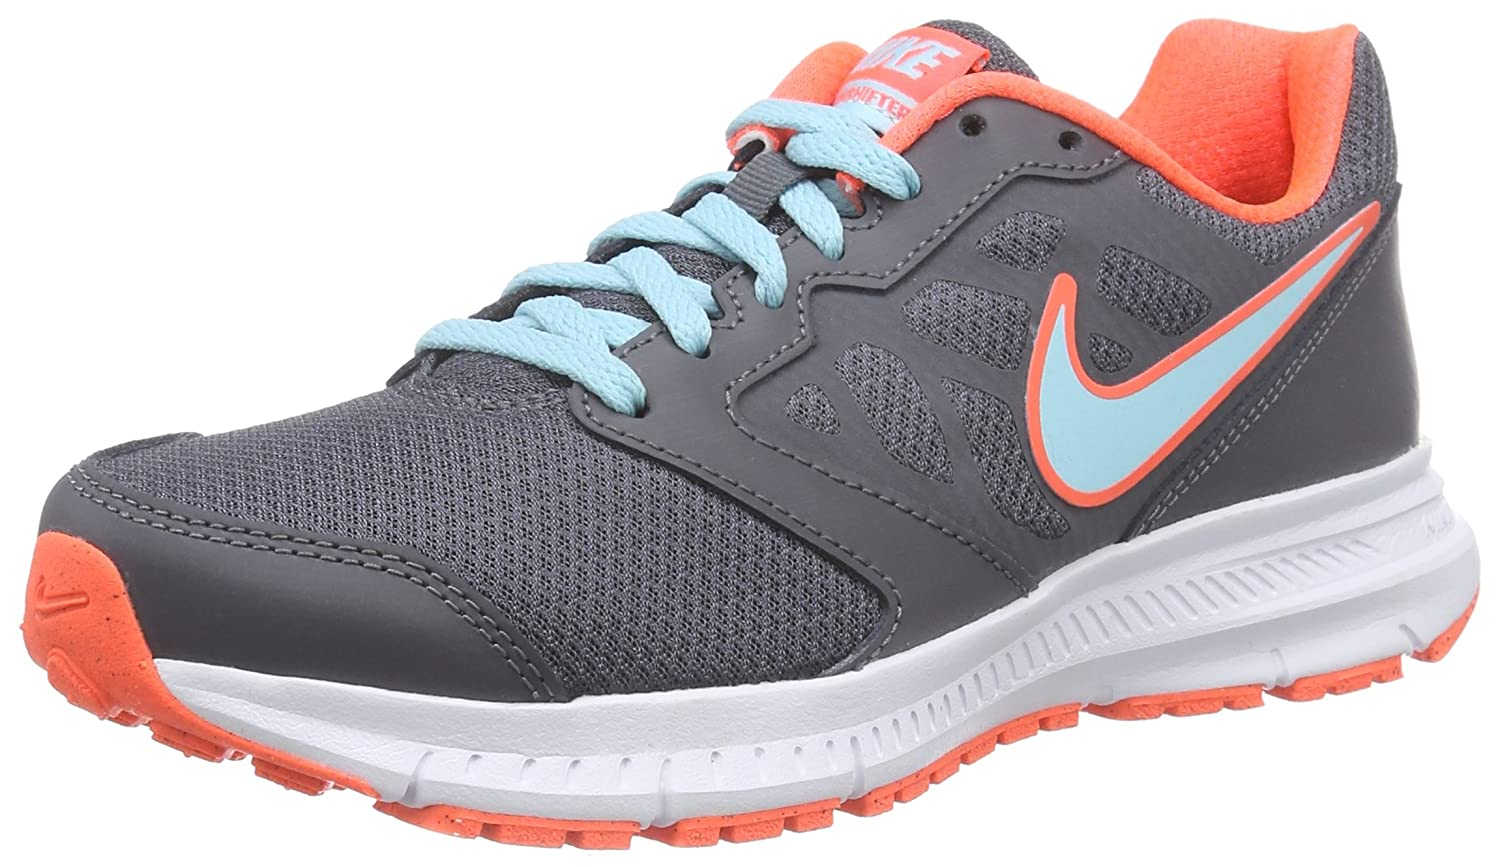 Nike Downshifter 6 Running Shoe B0163KPOJW 8.5 M US|Dark Grey/Copa/Hyper Orange/White